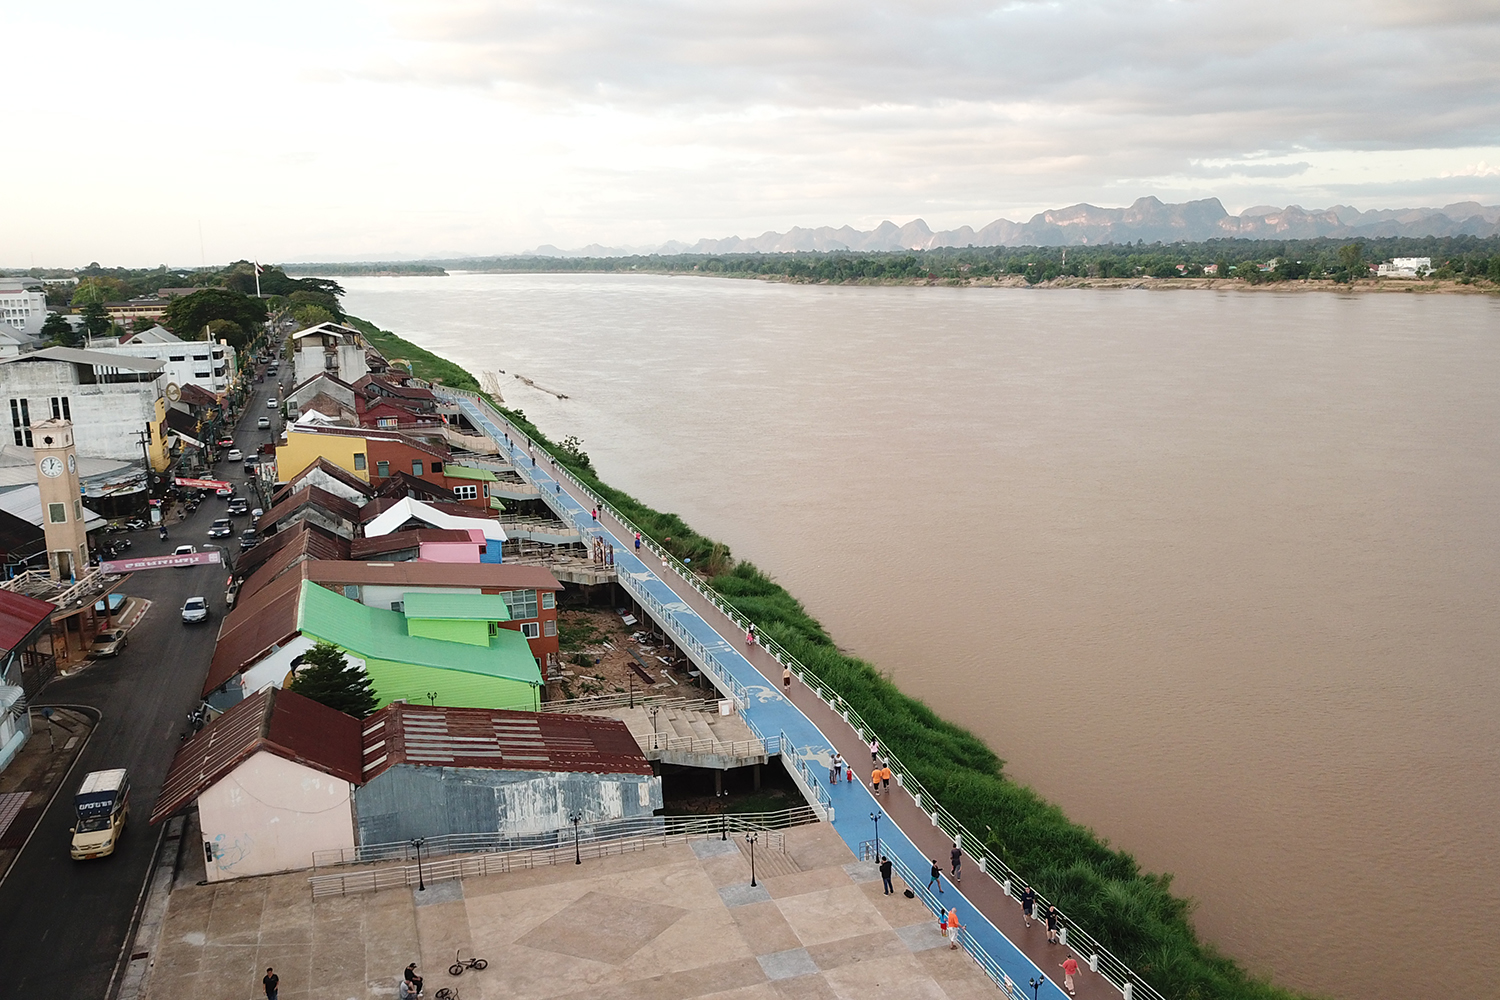 Several districts in Nakhon Phanom province are on alert for possible flooding from the Mekong River. (Photo by Pattanapong Sripiachai)